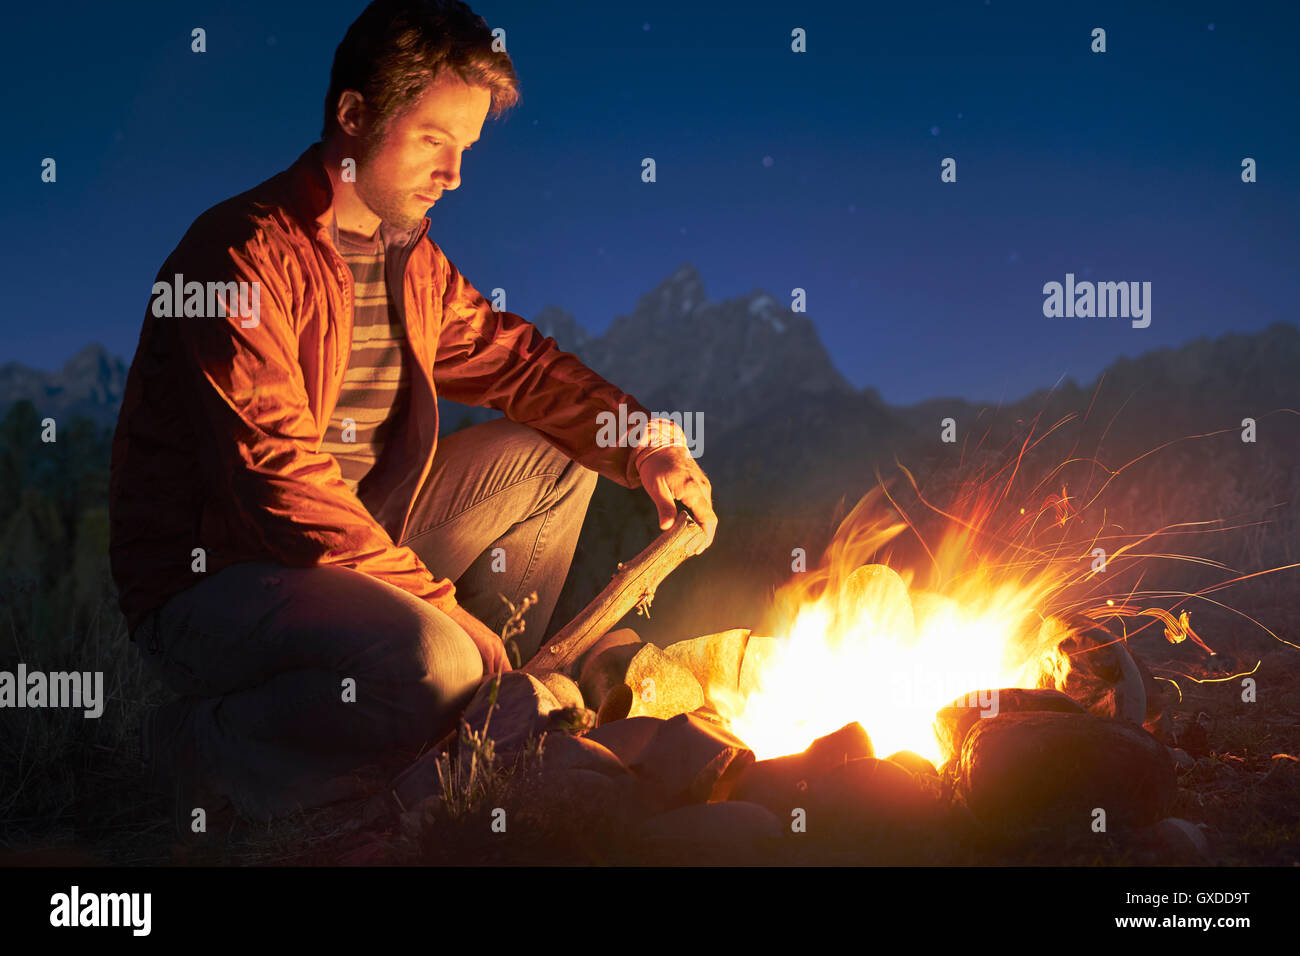 Man crouching by campfire at night, Jackson, Wyoming, USA - Stock Image